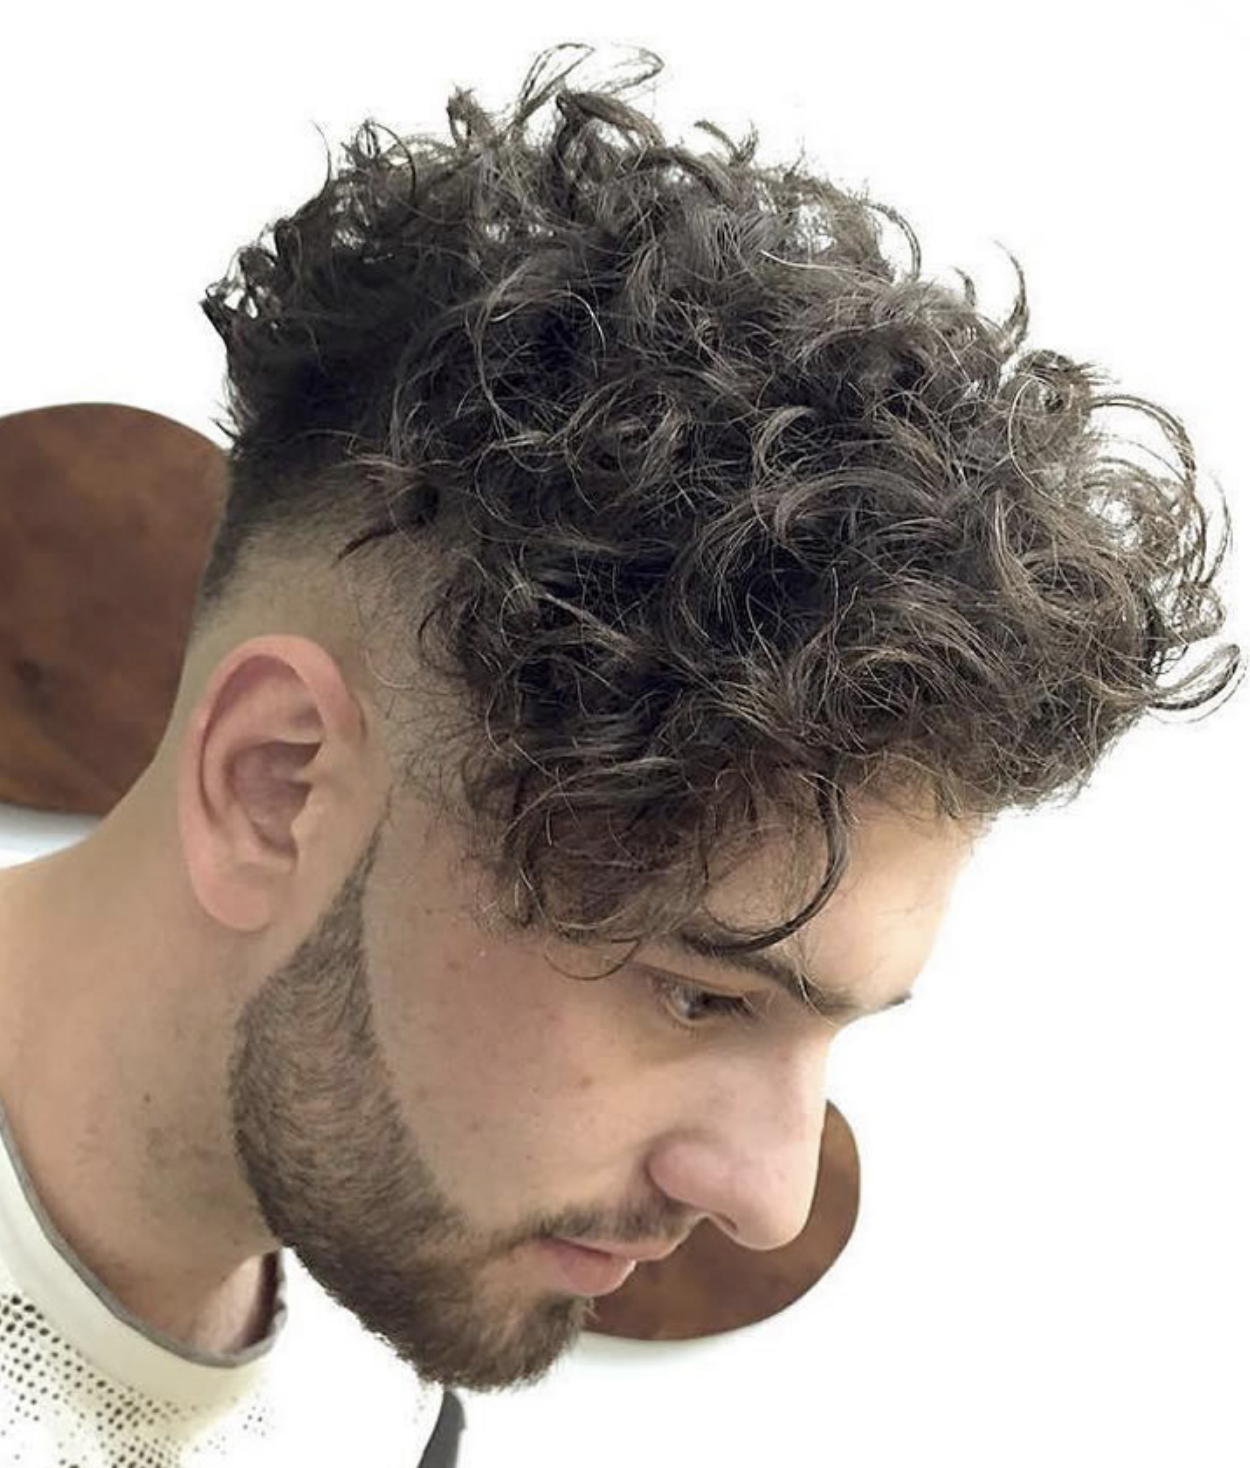 Modern Curly Hairstyle And Haircuts For Men That Will Trend In 2019 Keywords 2019 Curly Hair Undercut Curly Hair Long Hair Styles Men Short Hair With Bangs